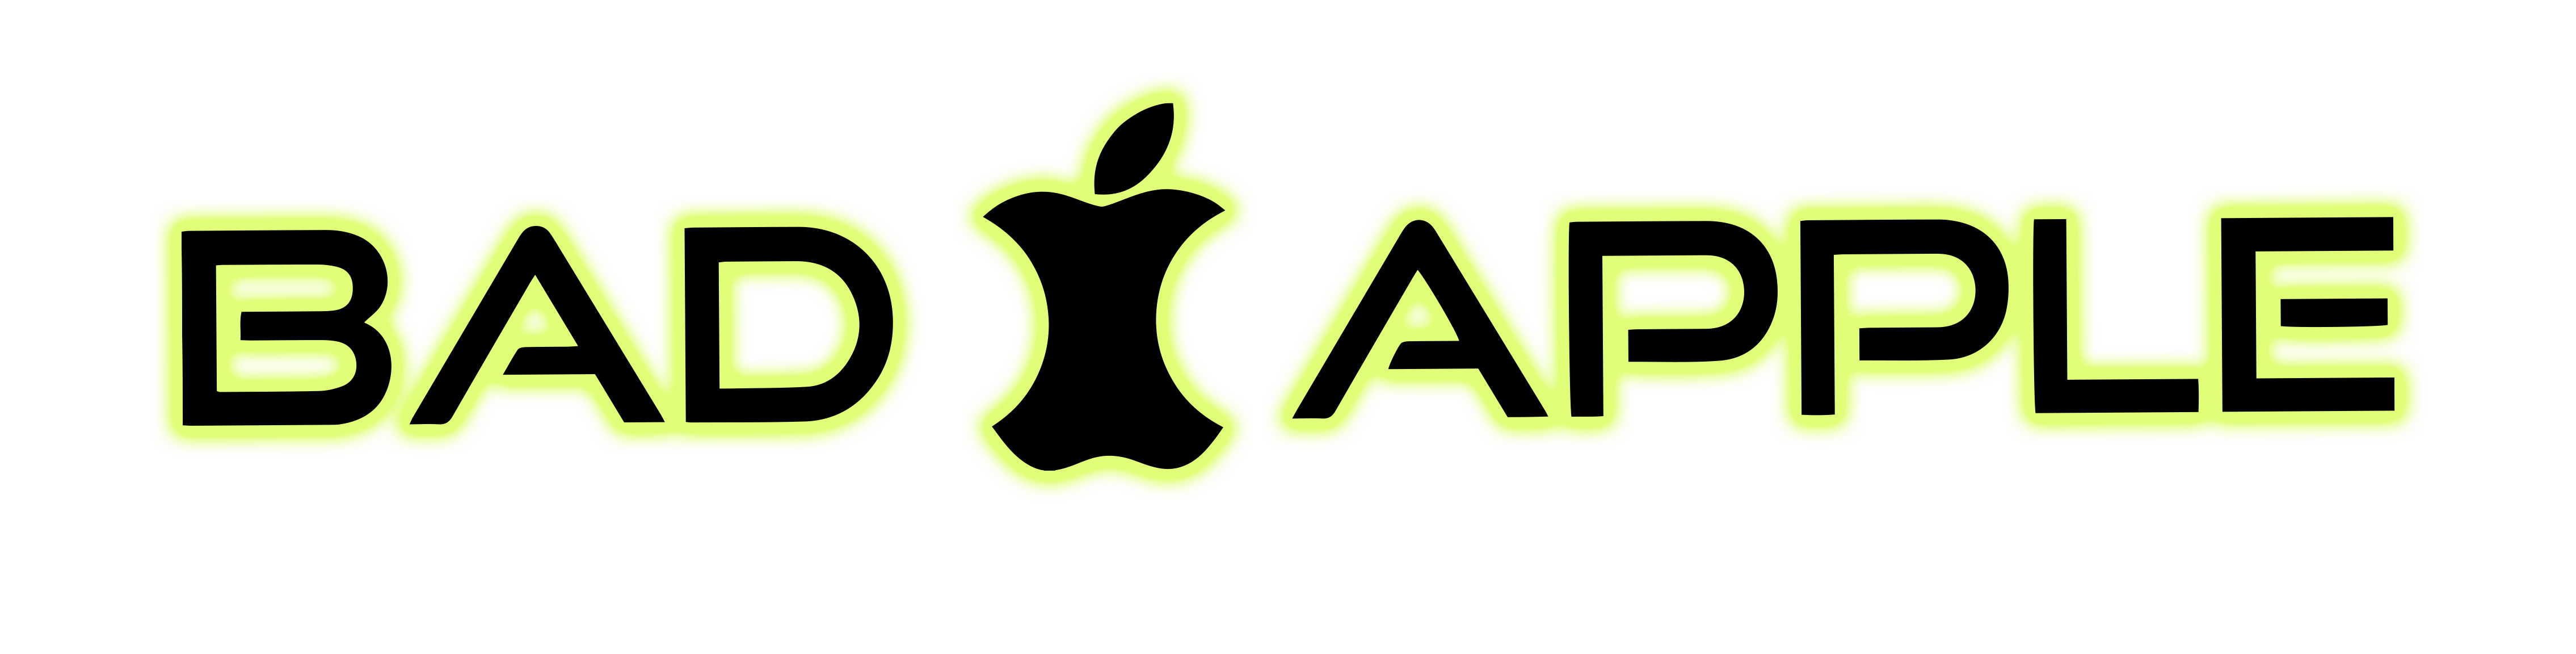 bad apple logo